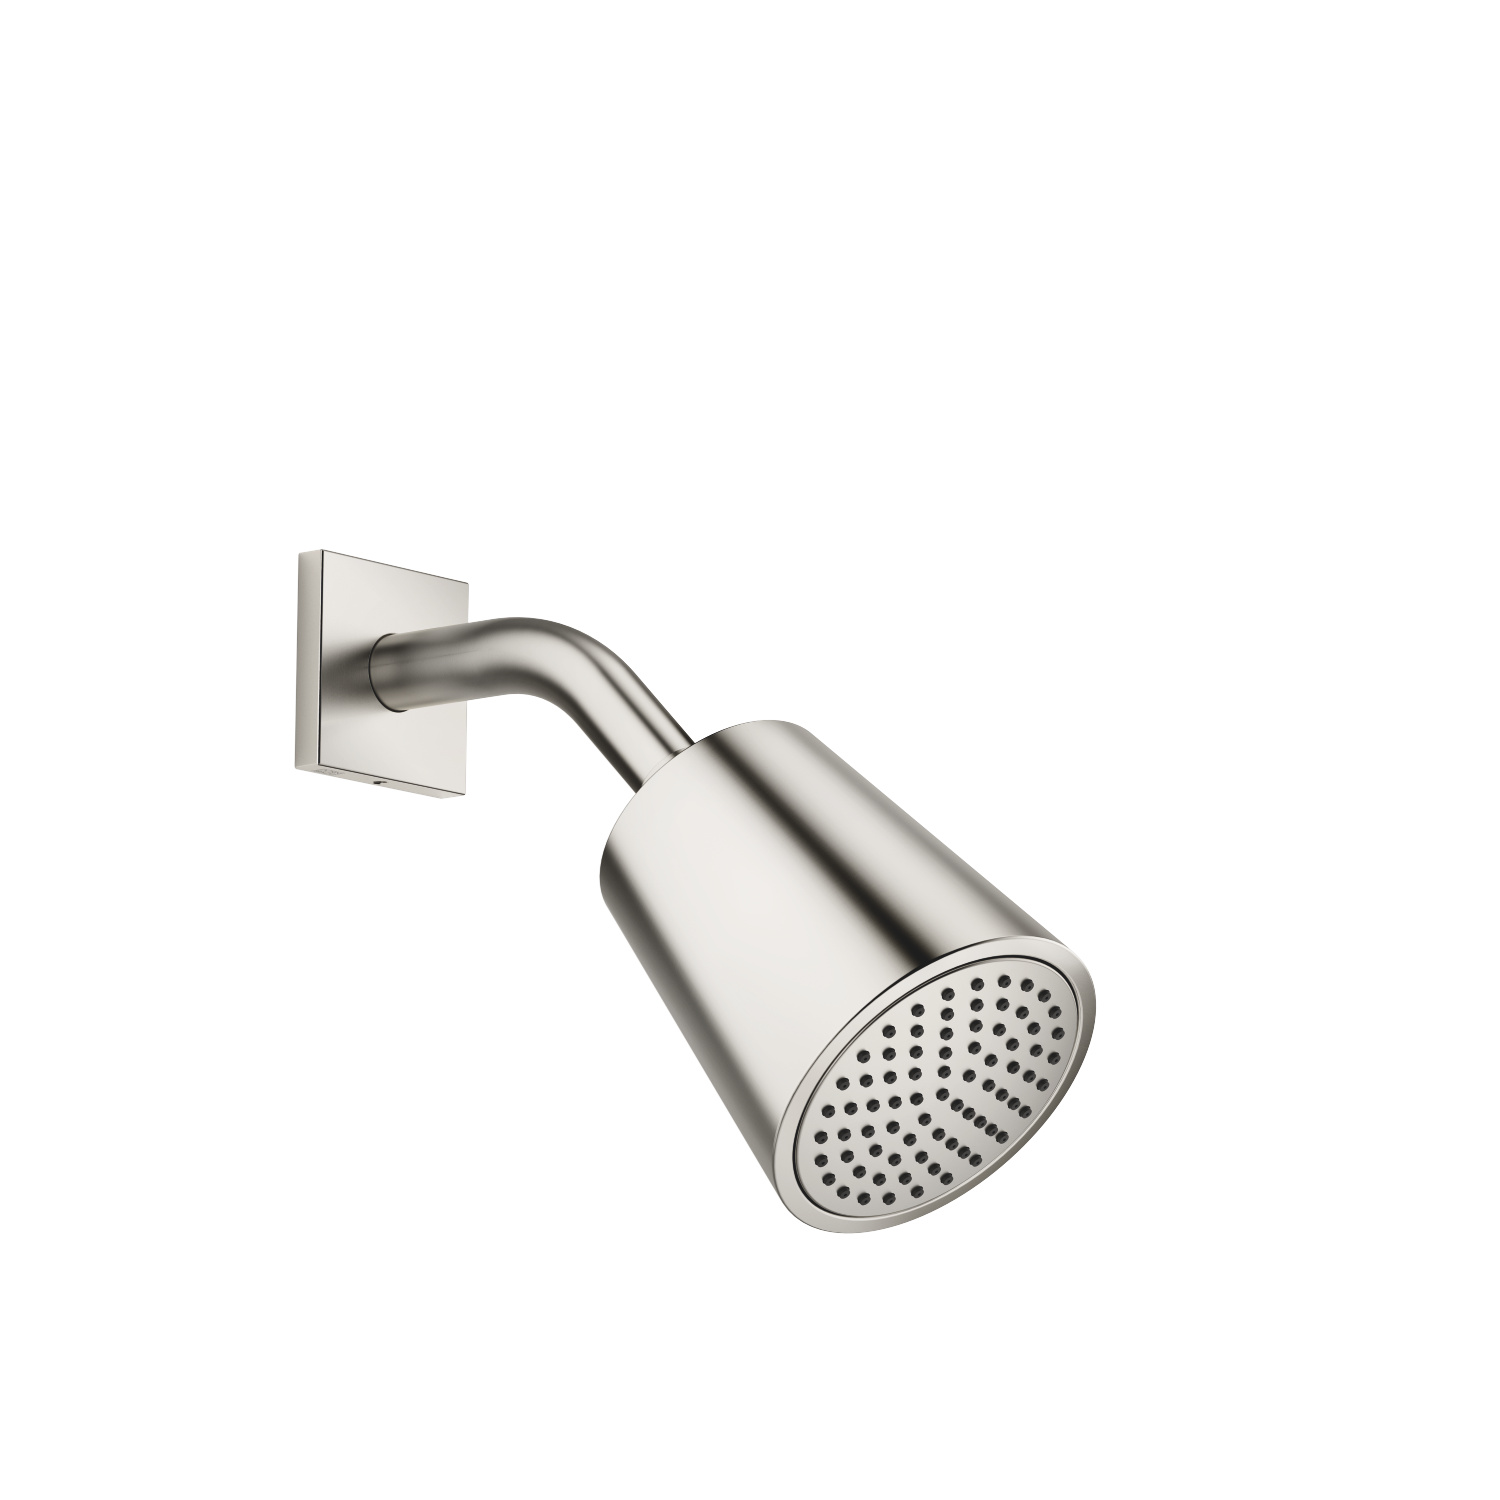 Shower head - platinum matt - 28 504 670-06 0010